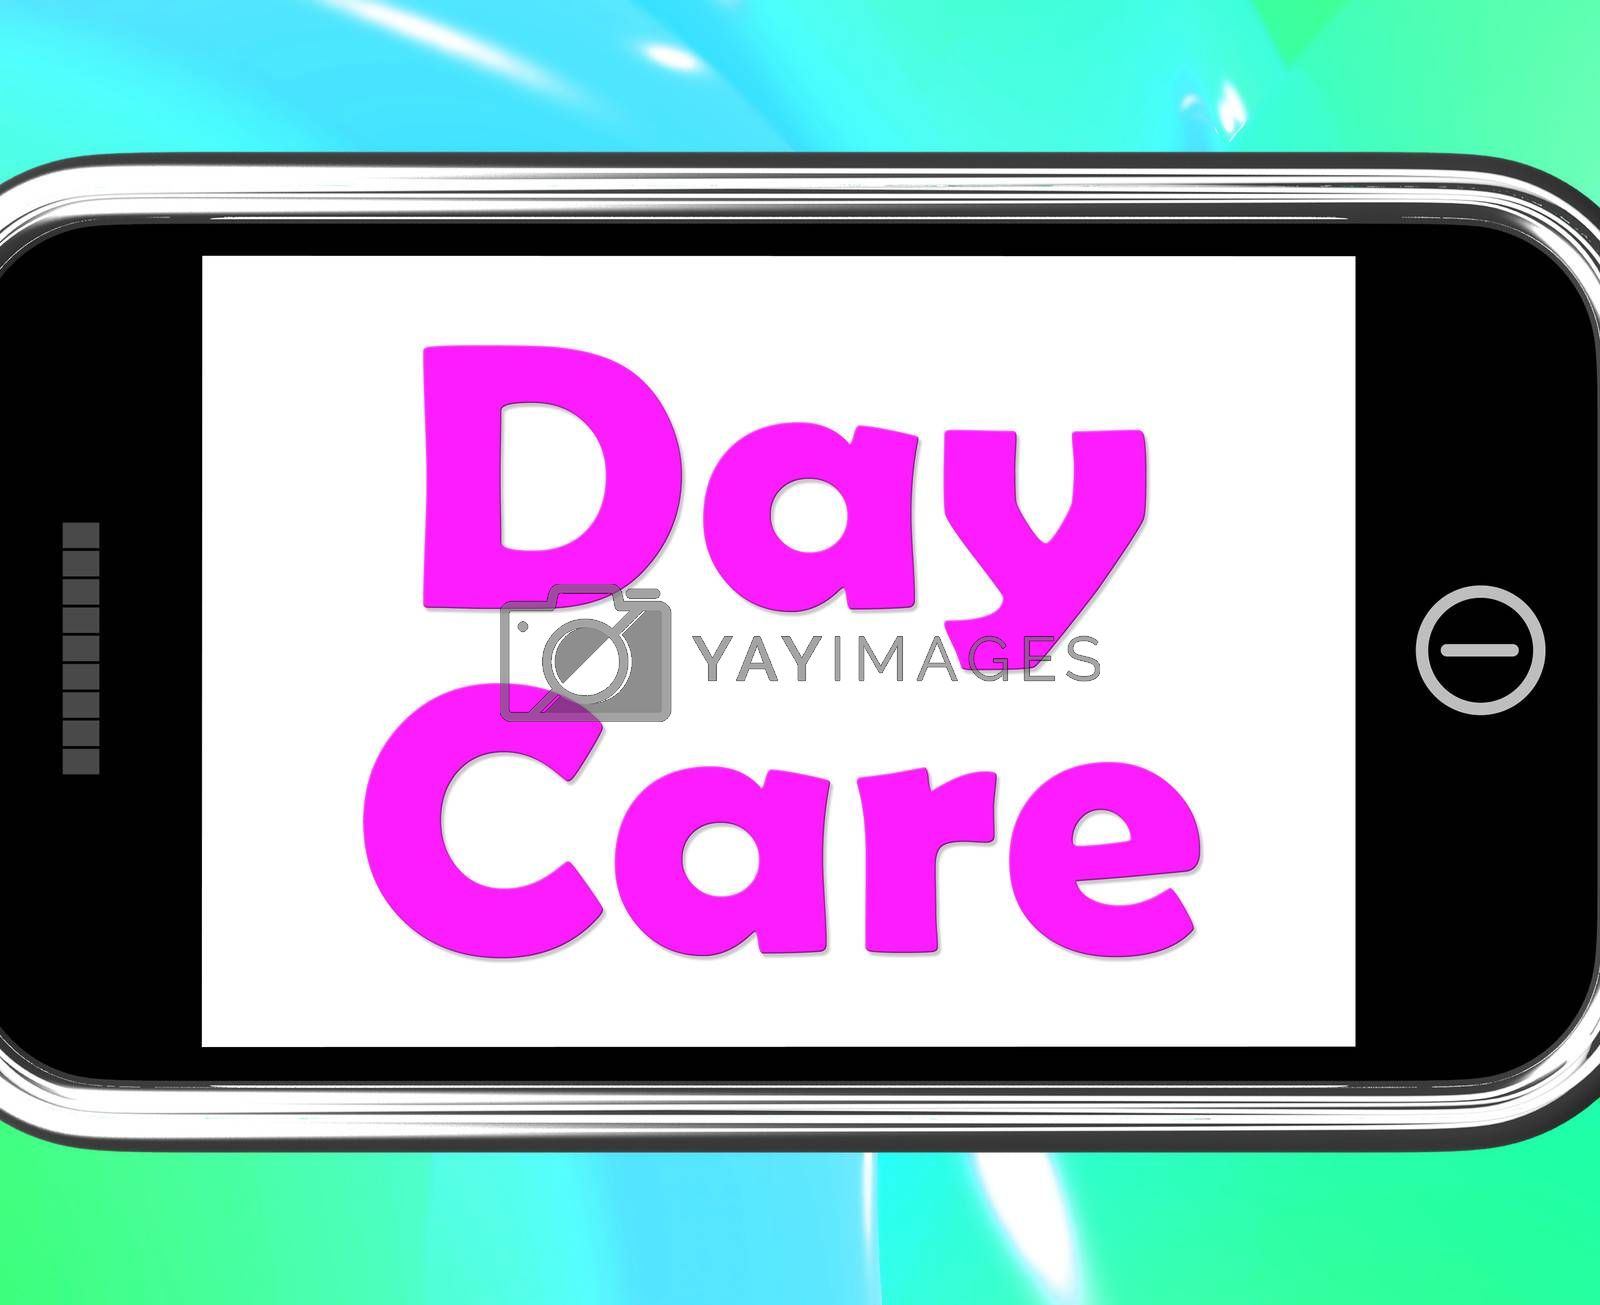 Day Care On Phone Showing Children's Or Toddlers Play